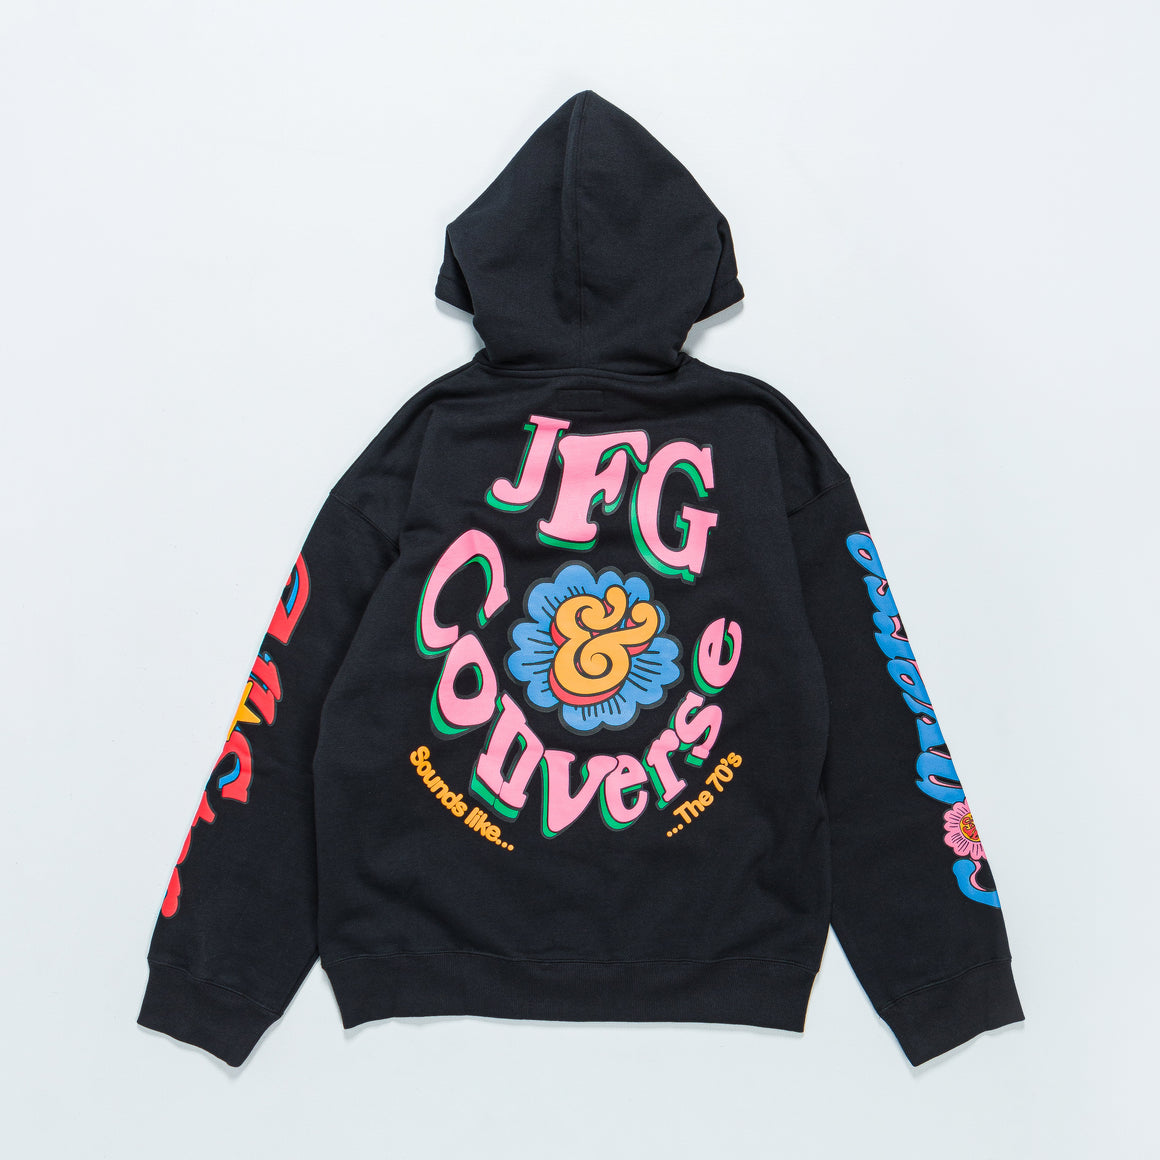 Converse - Hoodie x Joe Fresh Goods - Black - Up There